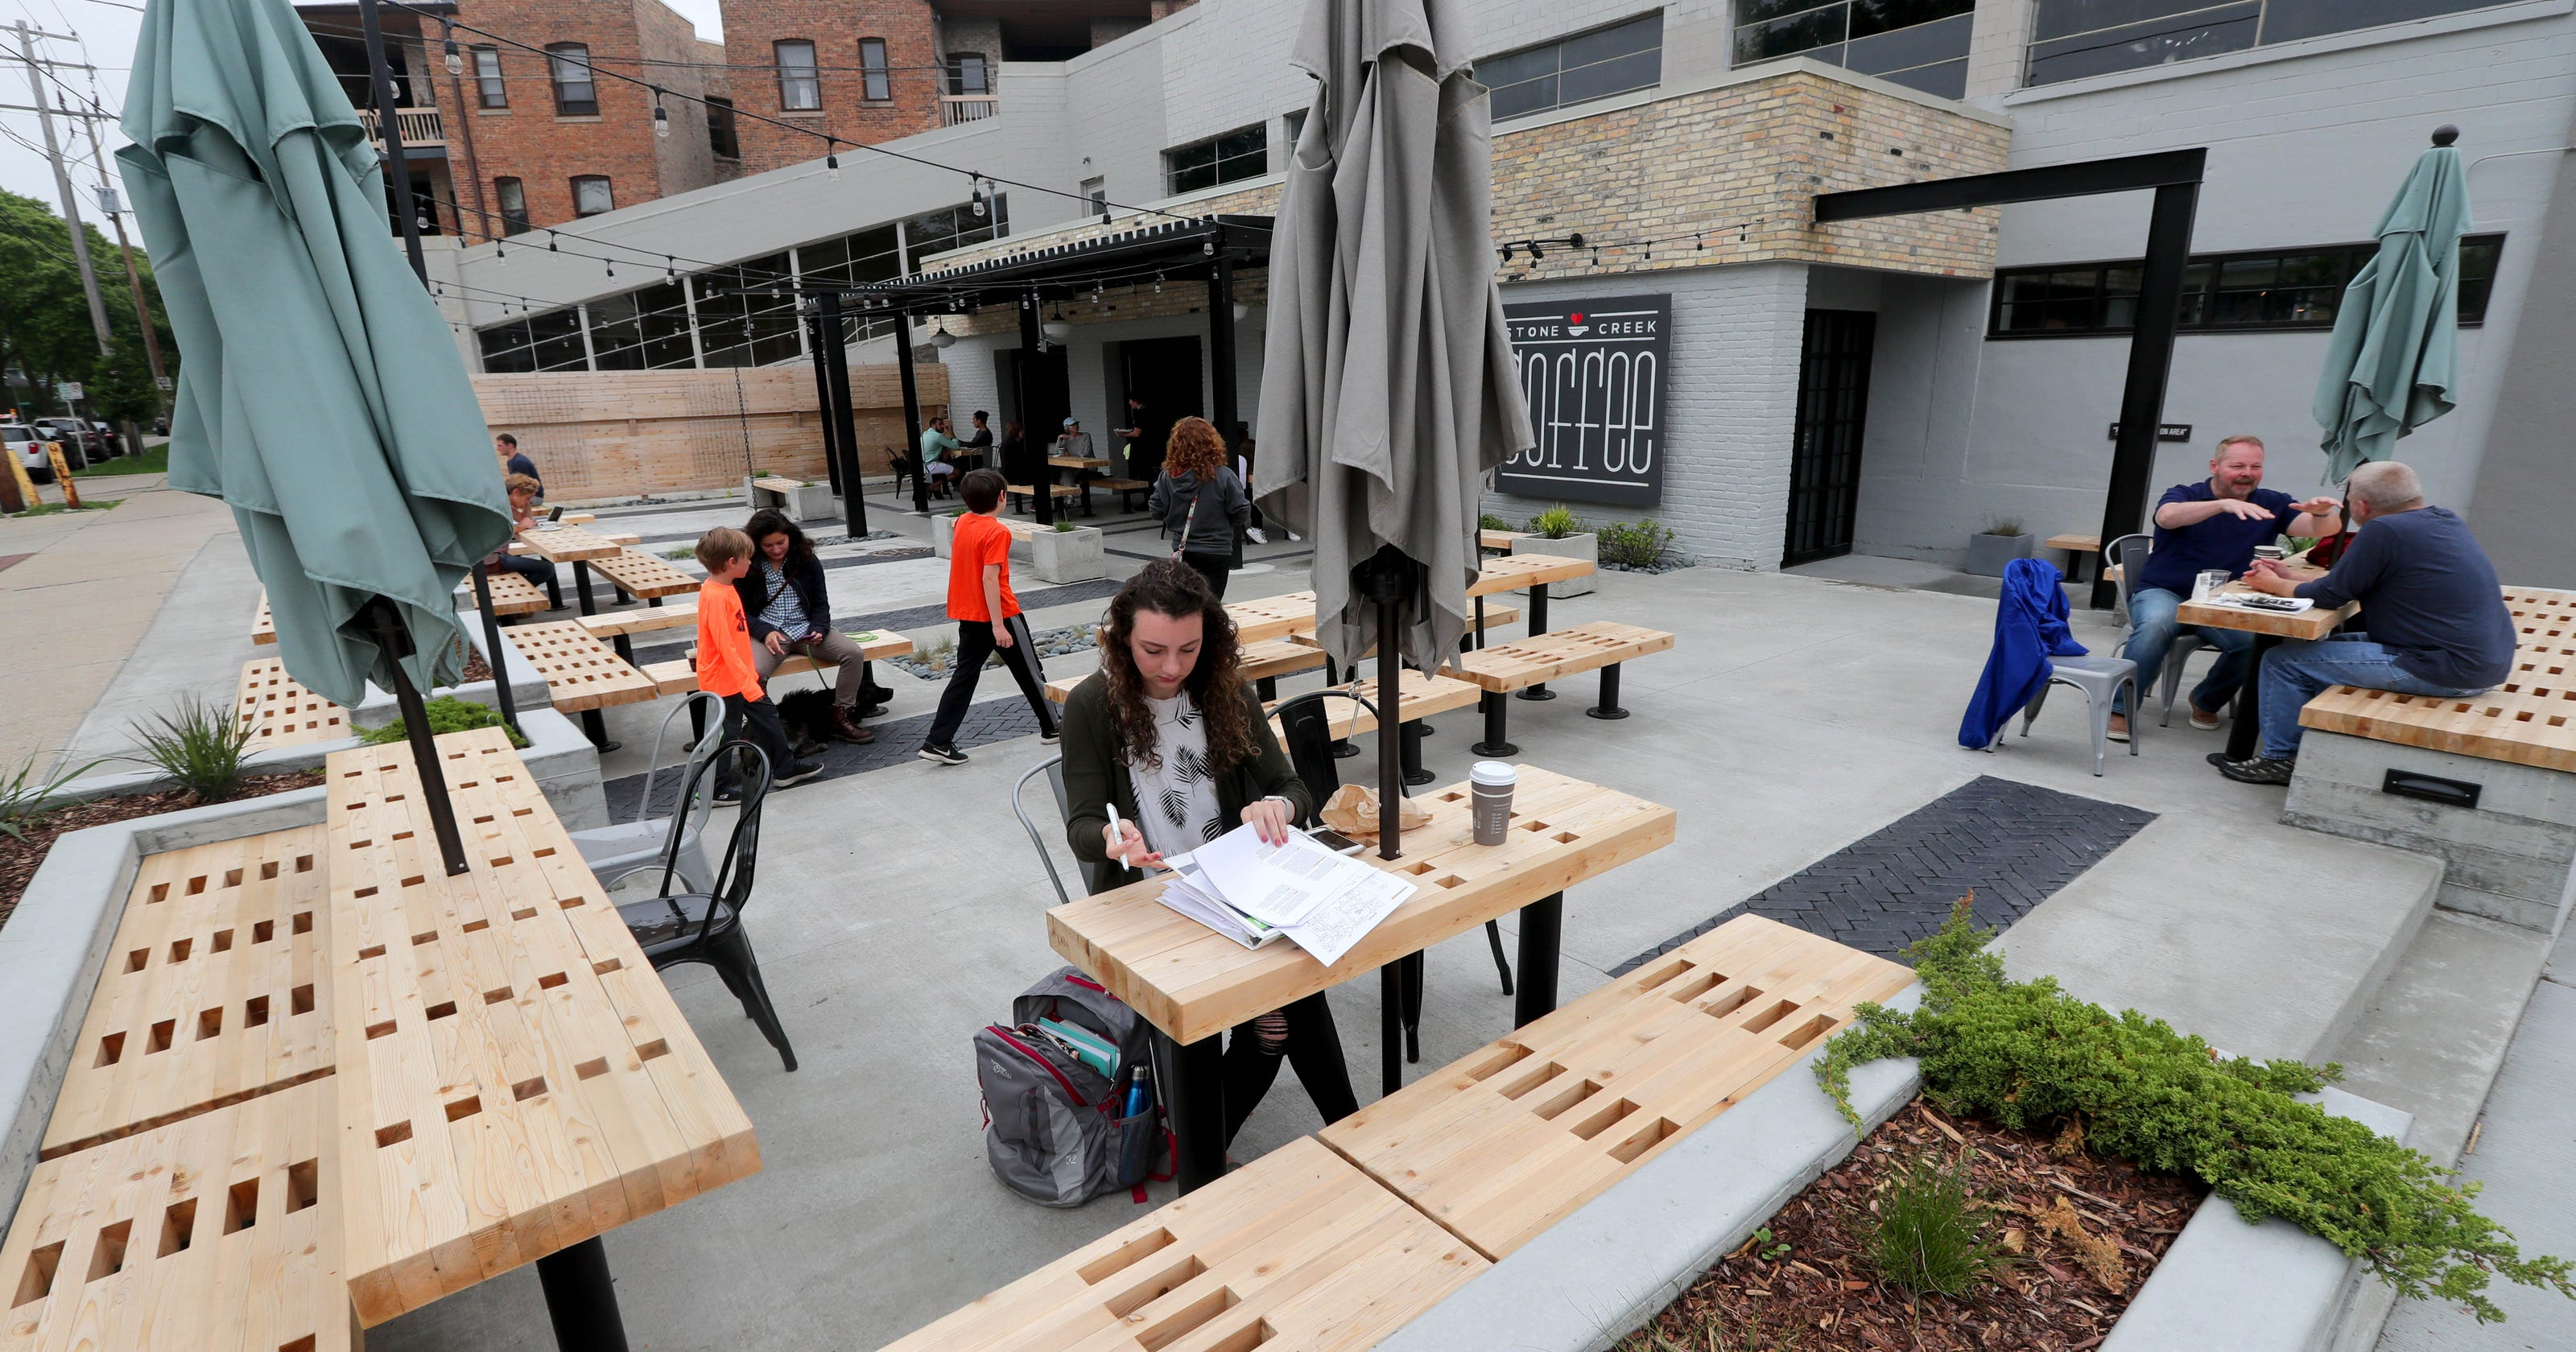 New patios in the Milwaukee area, summer 2018 edition